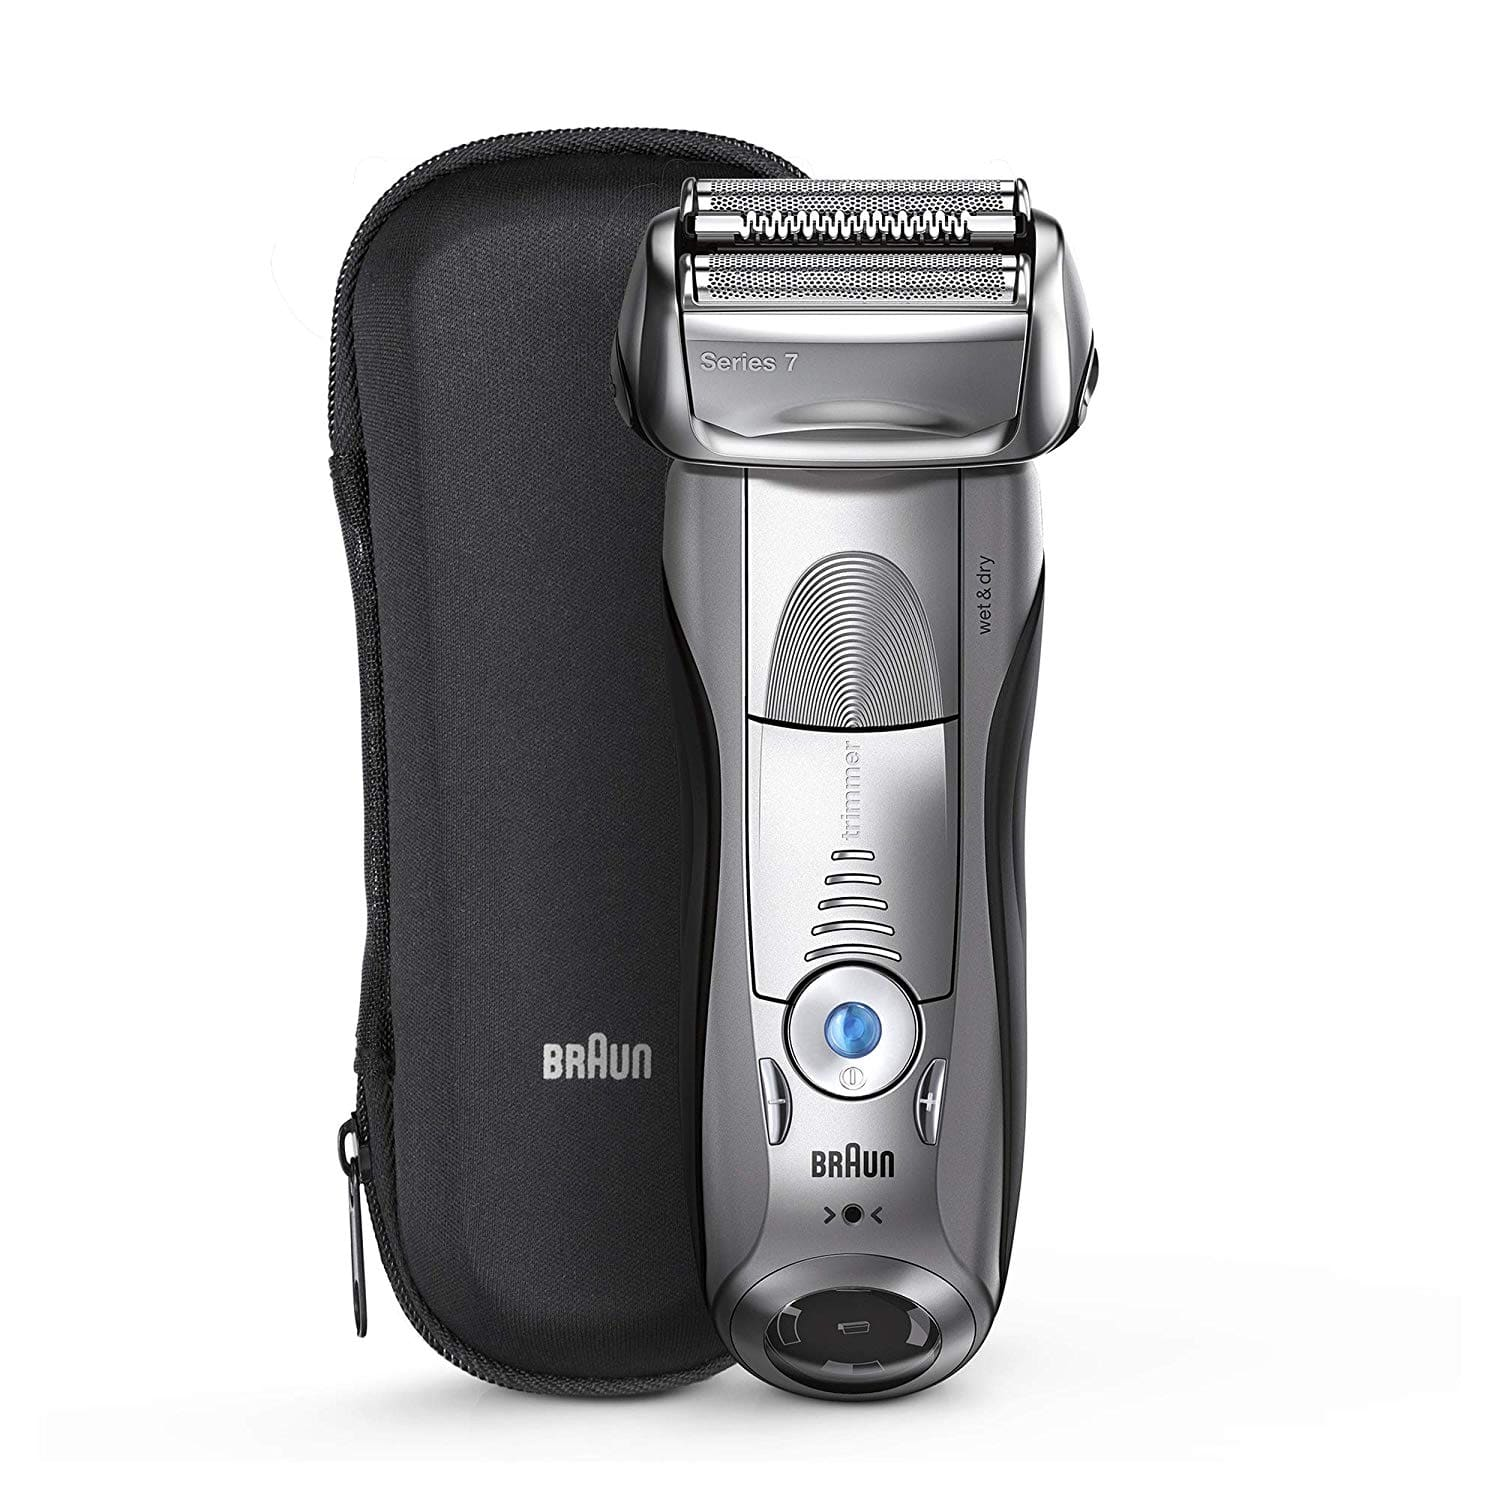 Amazon - Black Friday Deal: Up to $75 off Select Braun Shavers, Trimmers, Epilators, & IPLs + Free Shipping w/Prime